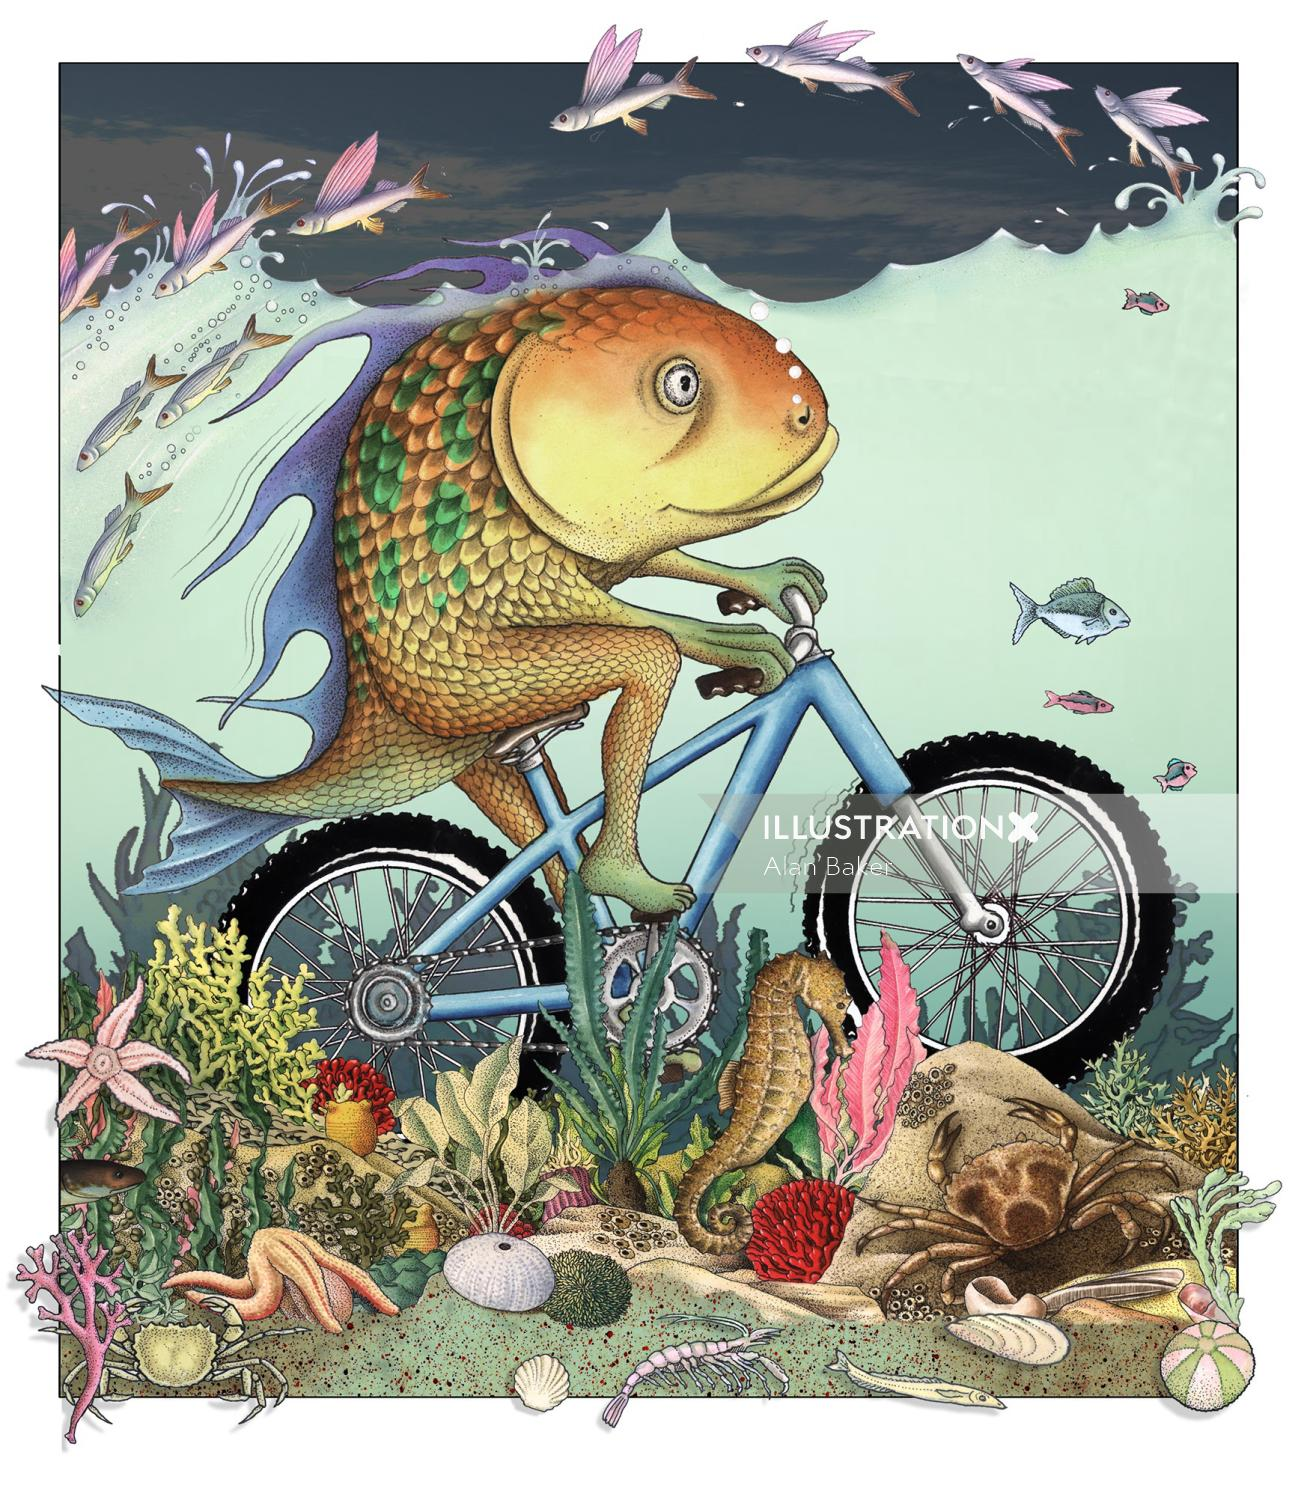 Fish on a bicycle for children's book by Alan Baker